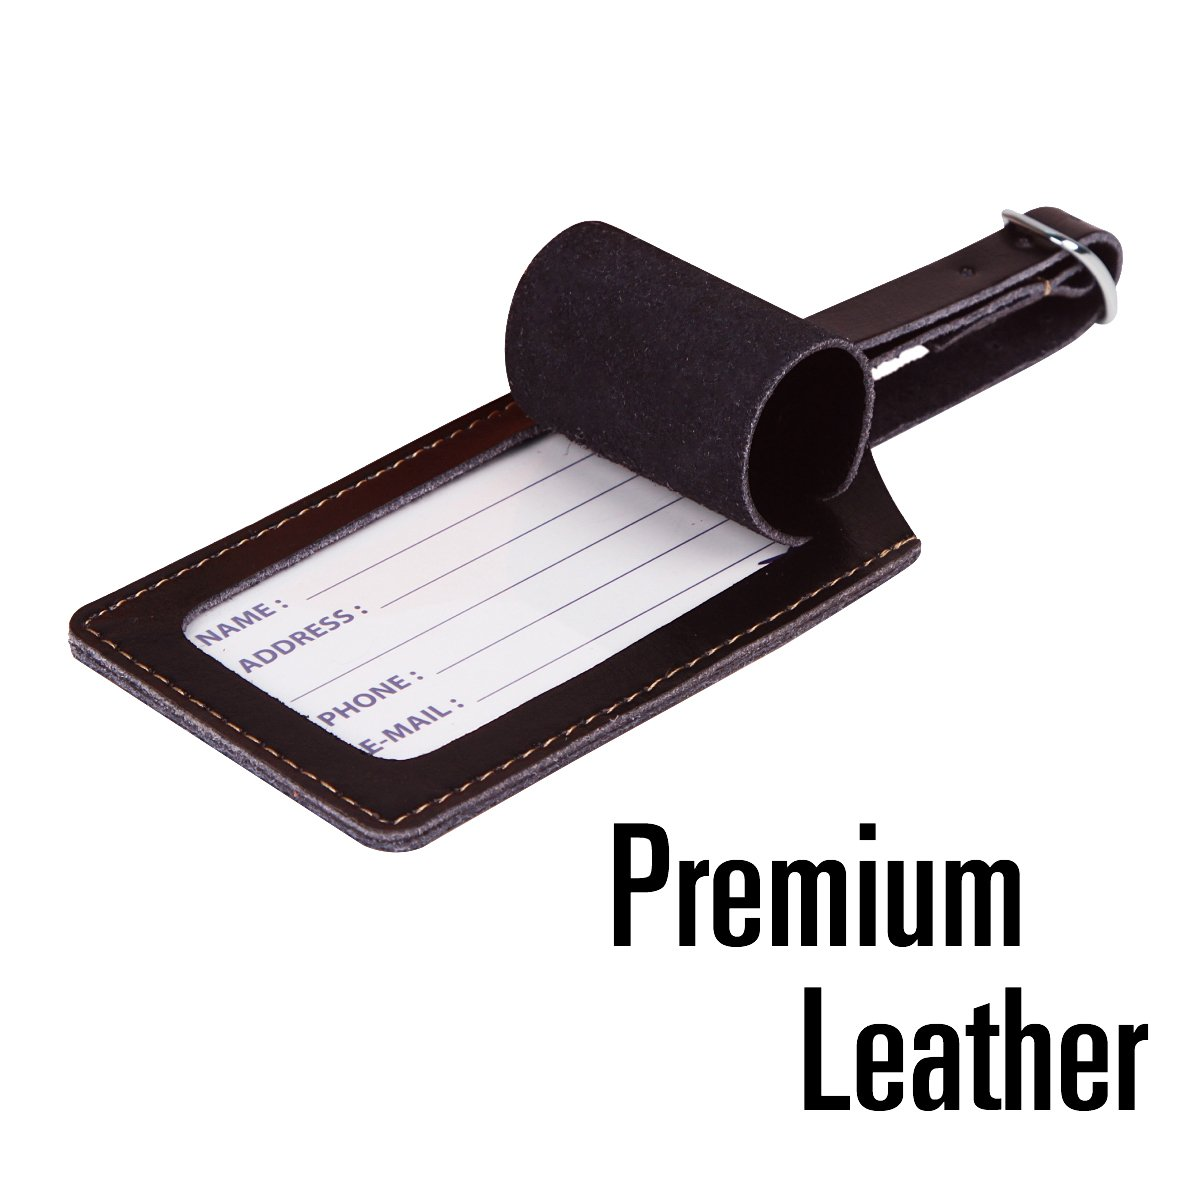 SwissElite Genuine Leather Luggage Tags /& Bag Tags 2 pieces Set in 14 Color